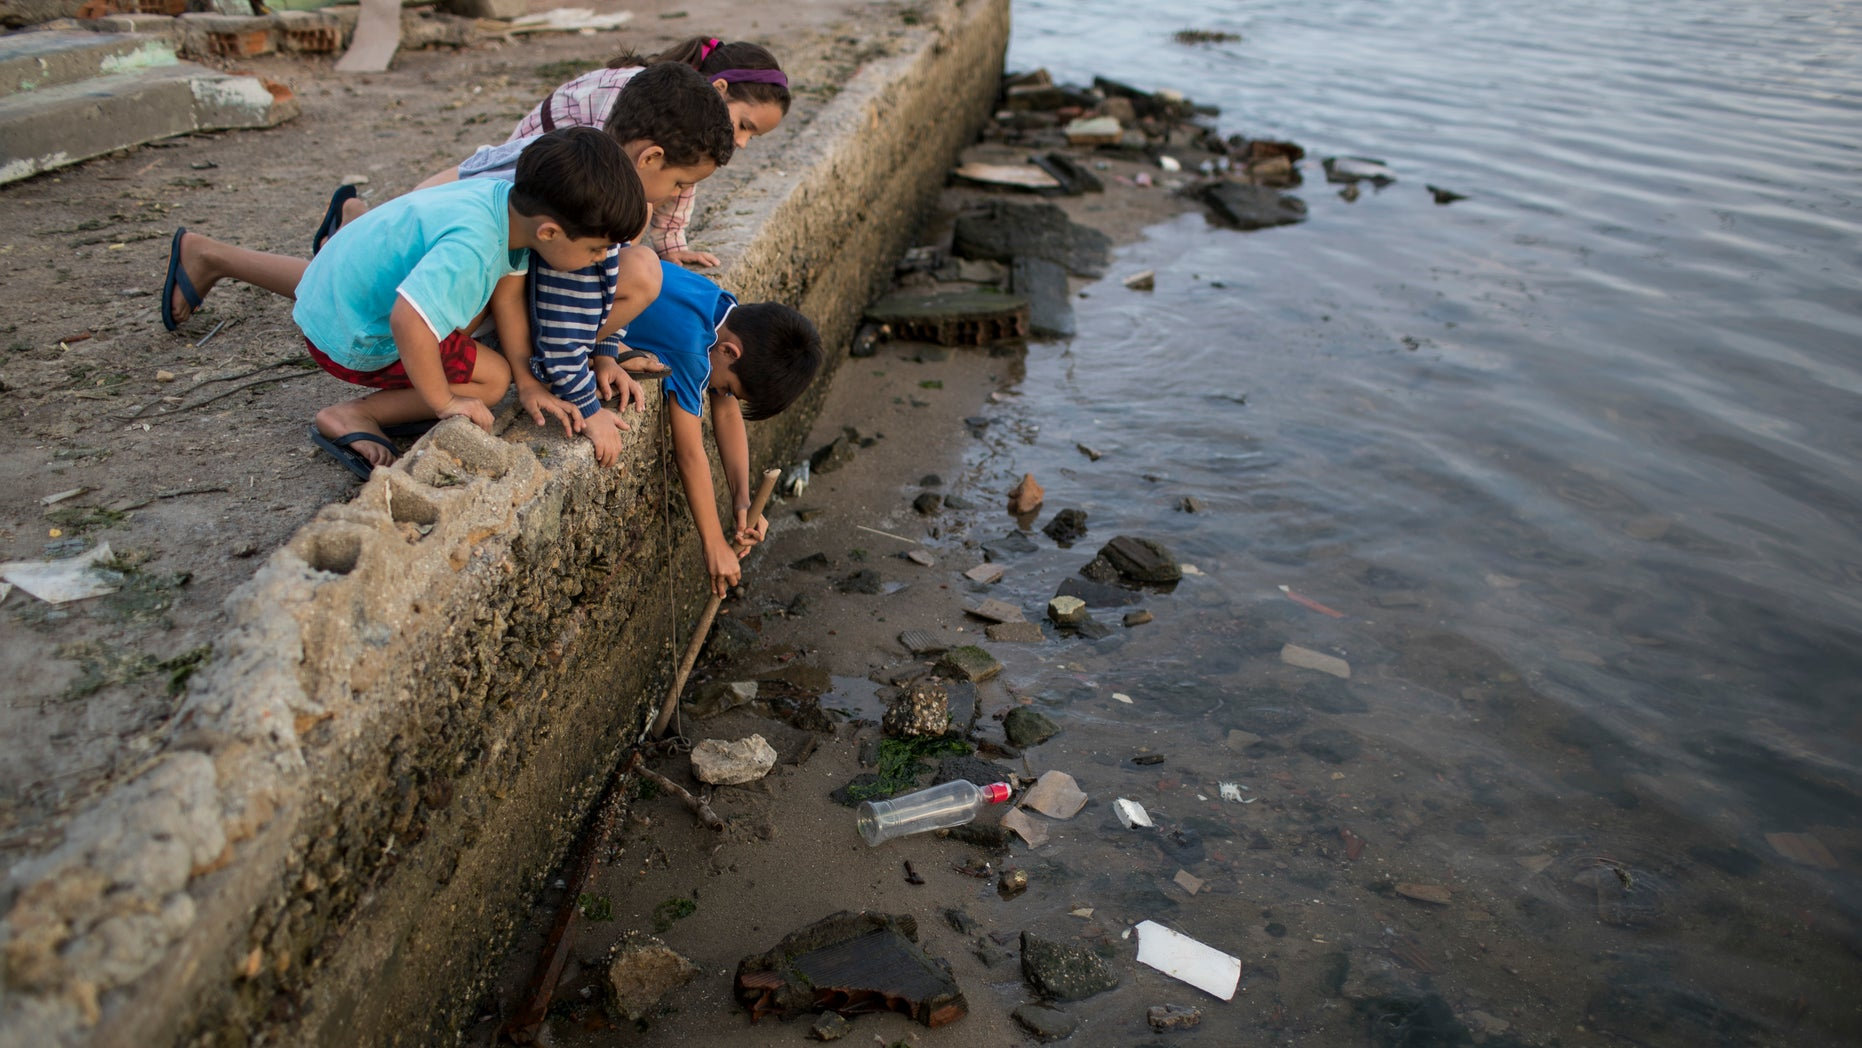 Children try to catch a crab as they play on the polluted shore of Guanabara Bay in Rio de Janeiro, Brazil, Saturday, July 30, 2016. In Rio, the main tourist gateway to the country, a centuries-long sewage problem that was part of Brazil's colonial legacy has spiked in recent decades in tandem with the rural exodus that saw the metropolitan area nearly double in size since 1970. (AP Photo/Felipe Dana)